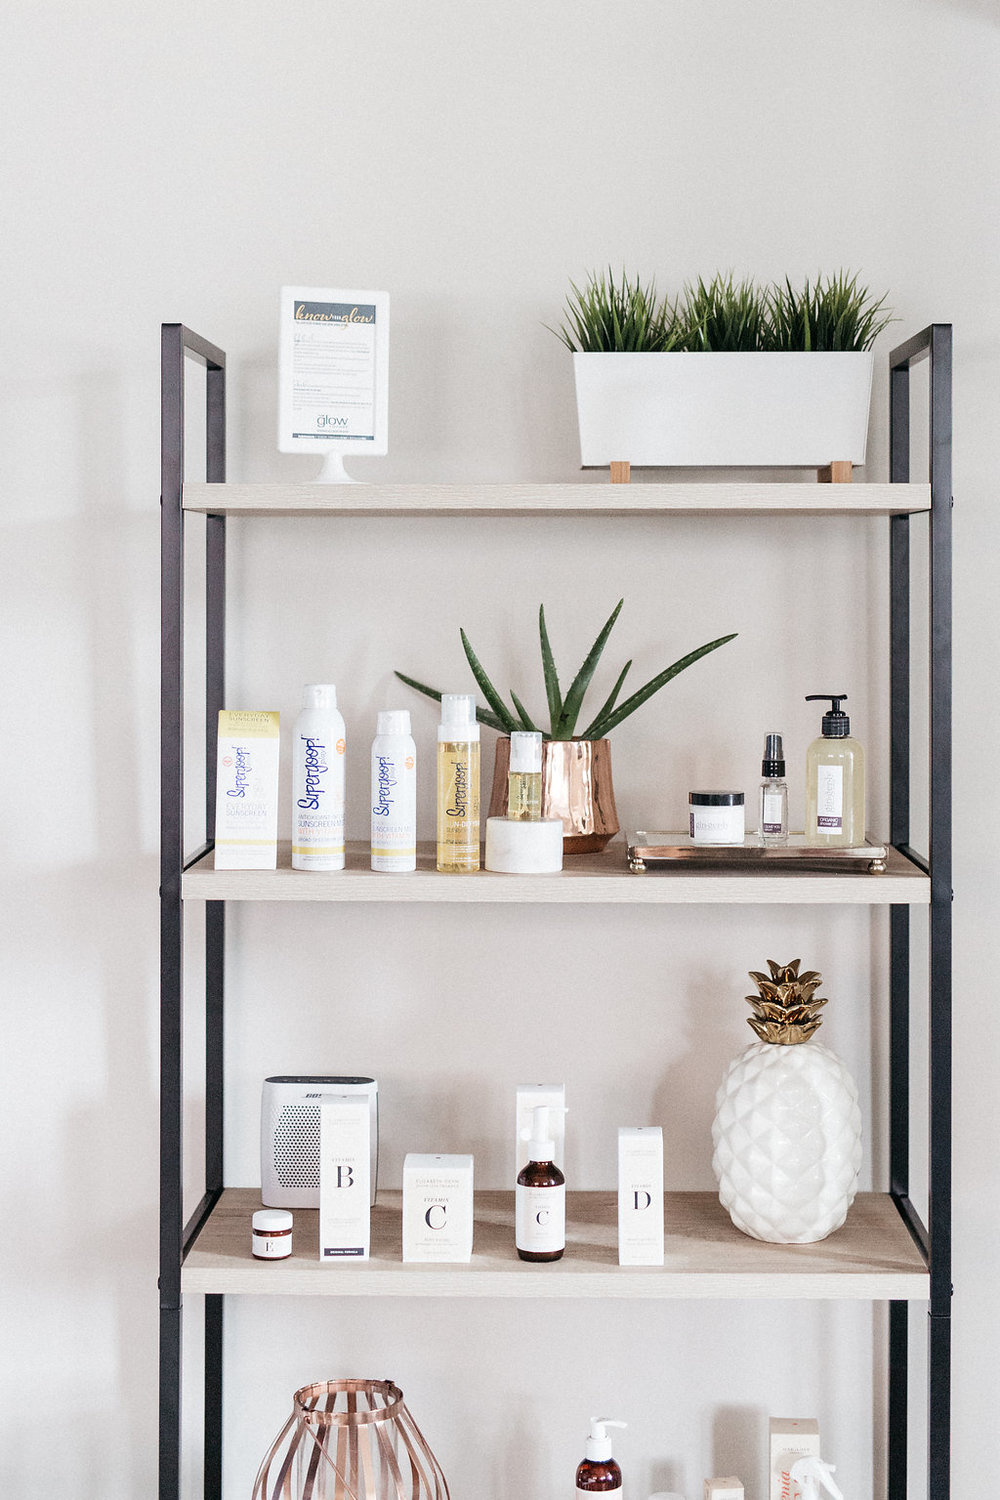 Product Shelfie